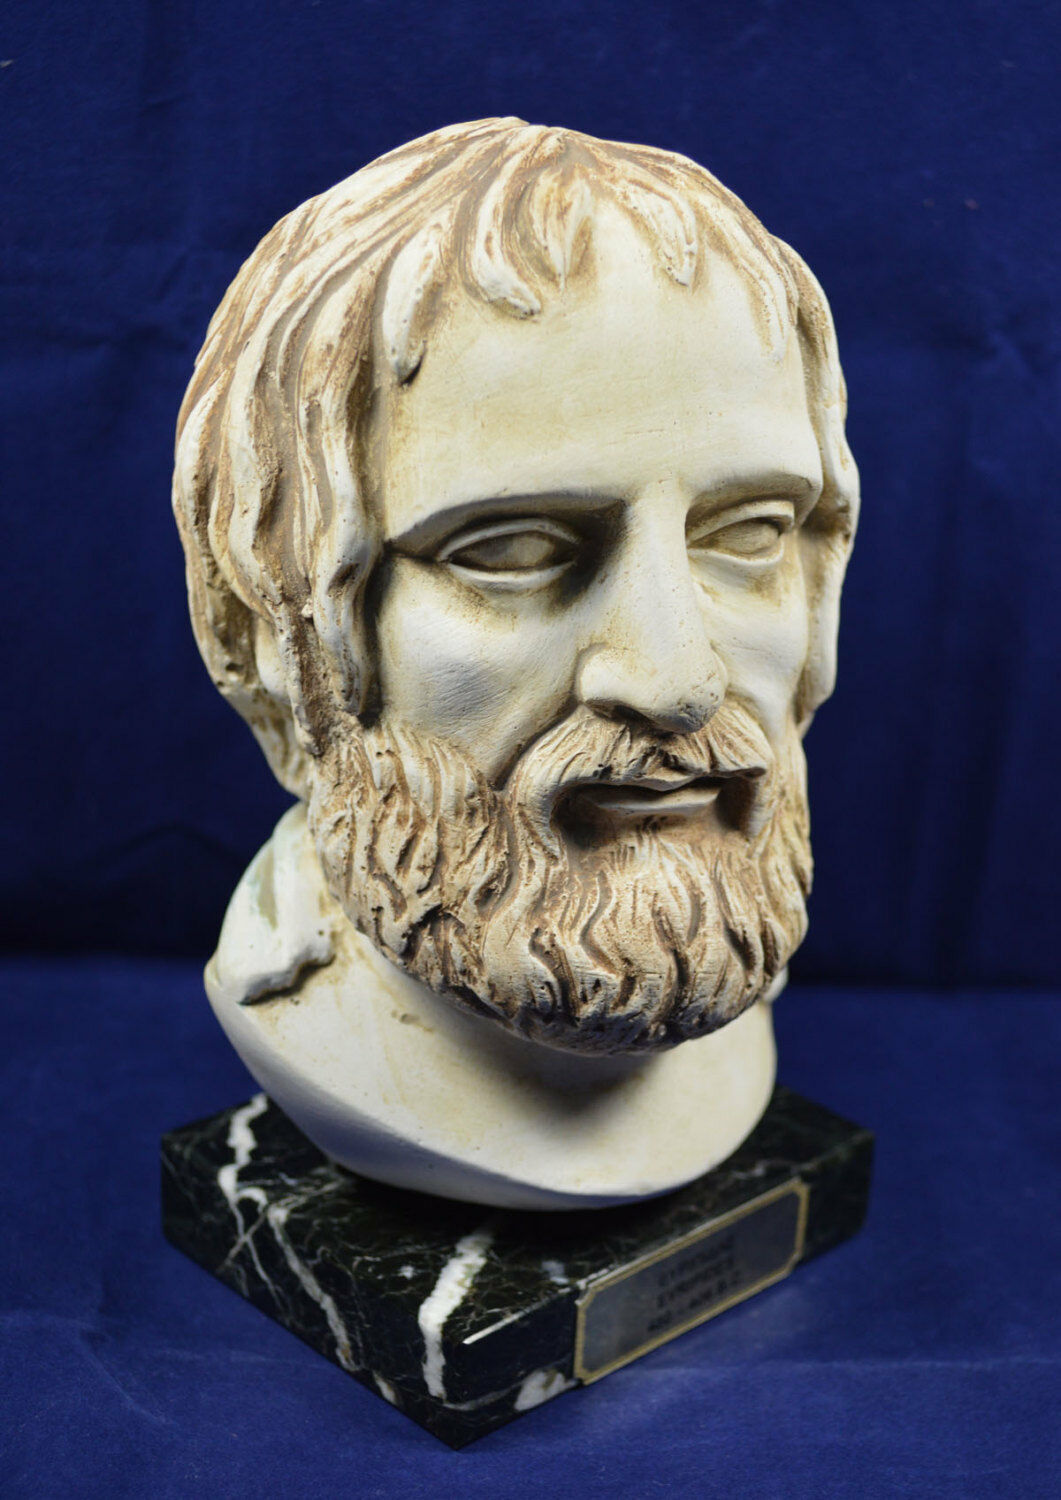 Euripides sculpture tragedian of classical Athens bust Tragedy